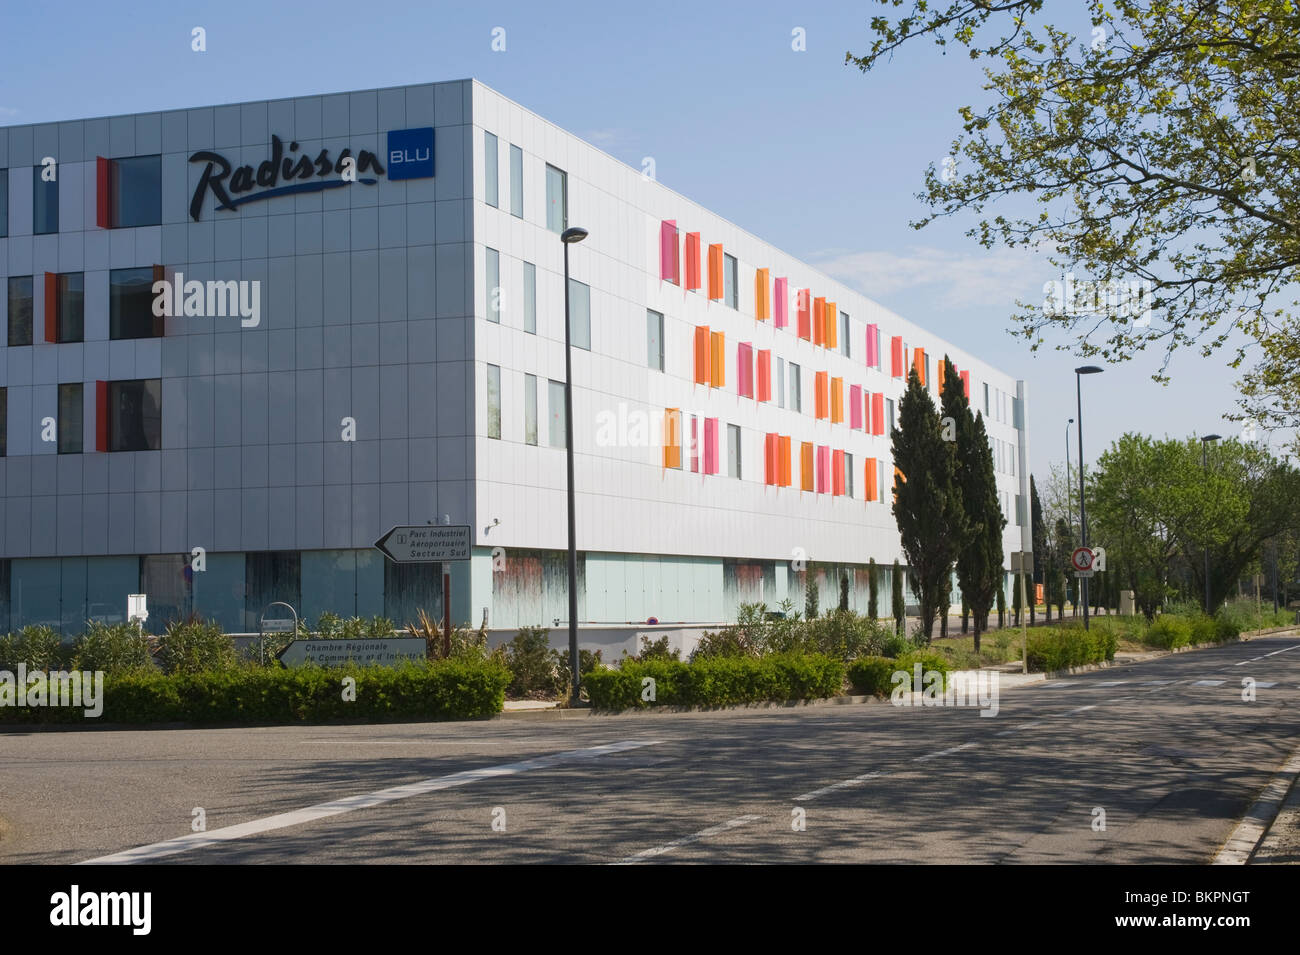 The Comfortable Radisson Blu Hotel at Toulouse Blagnac Airport Haute-Garonne Midi-Pyrenees France - Stock Image